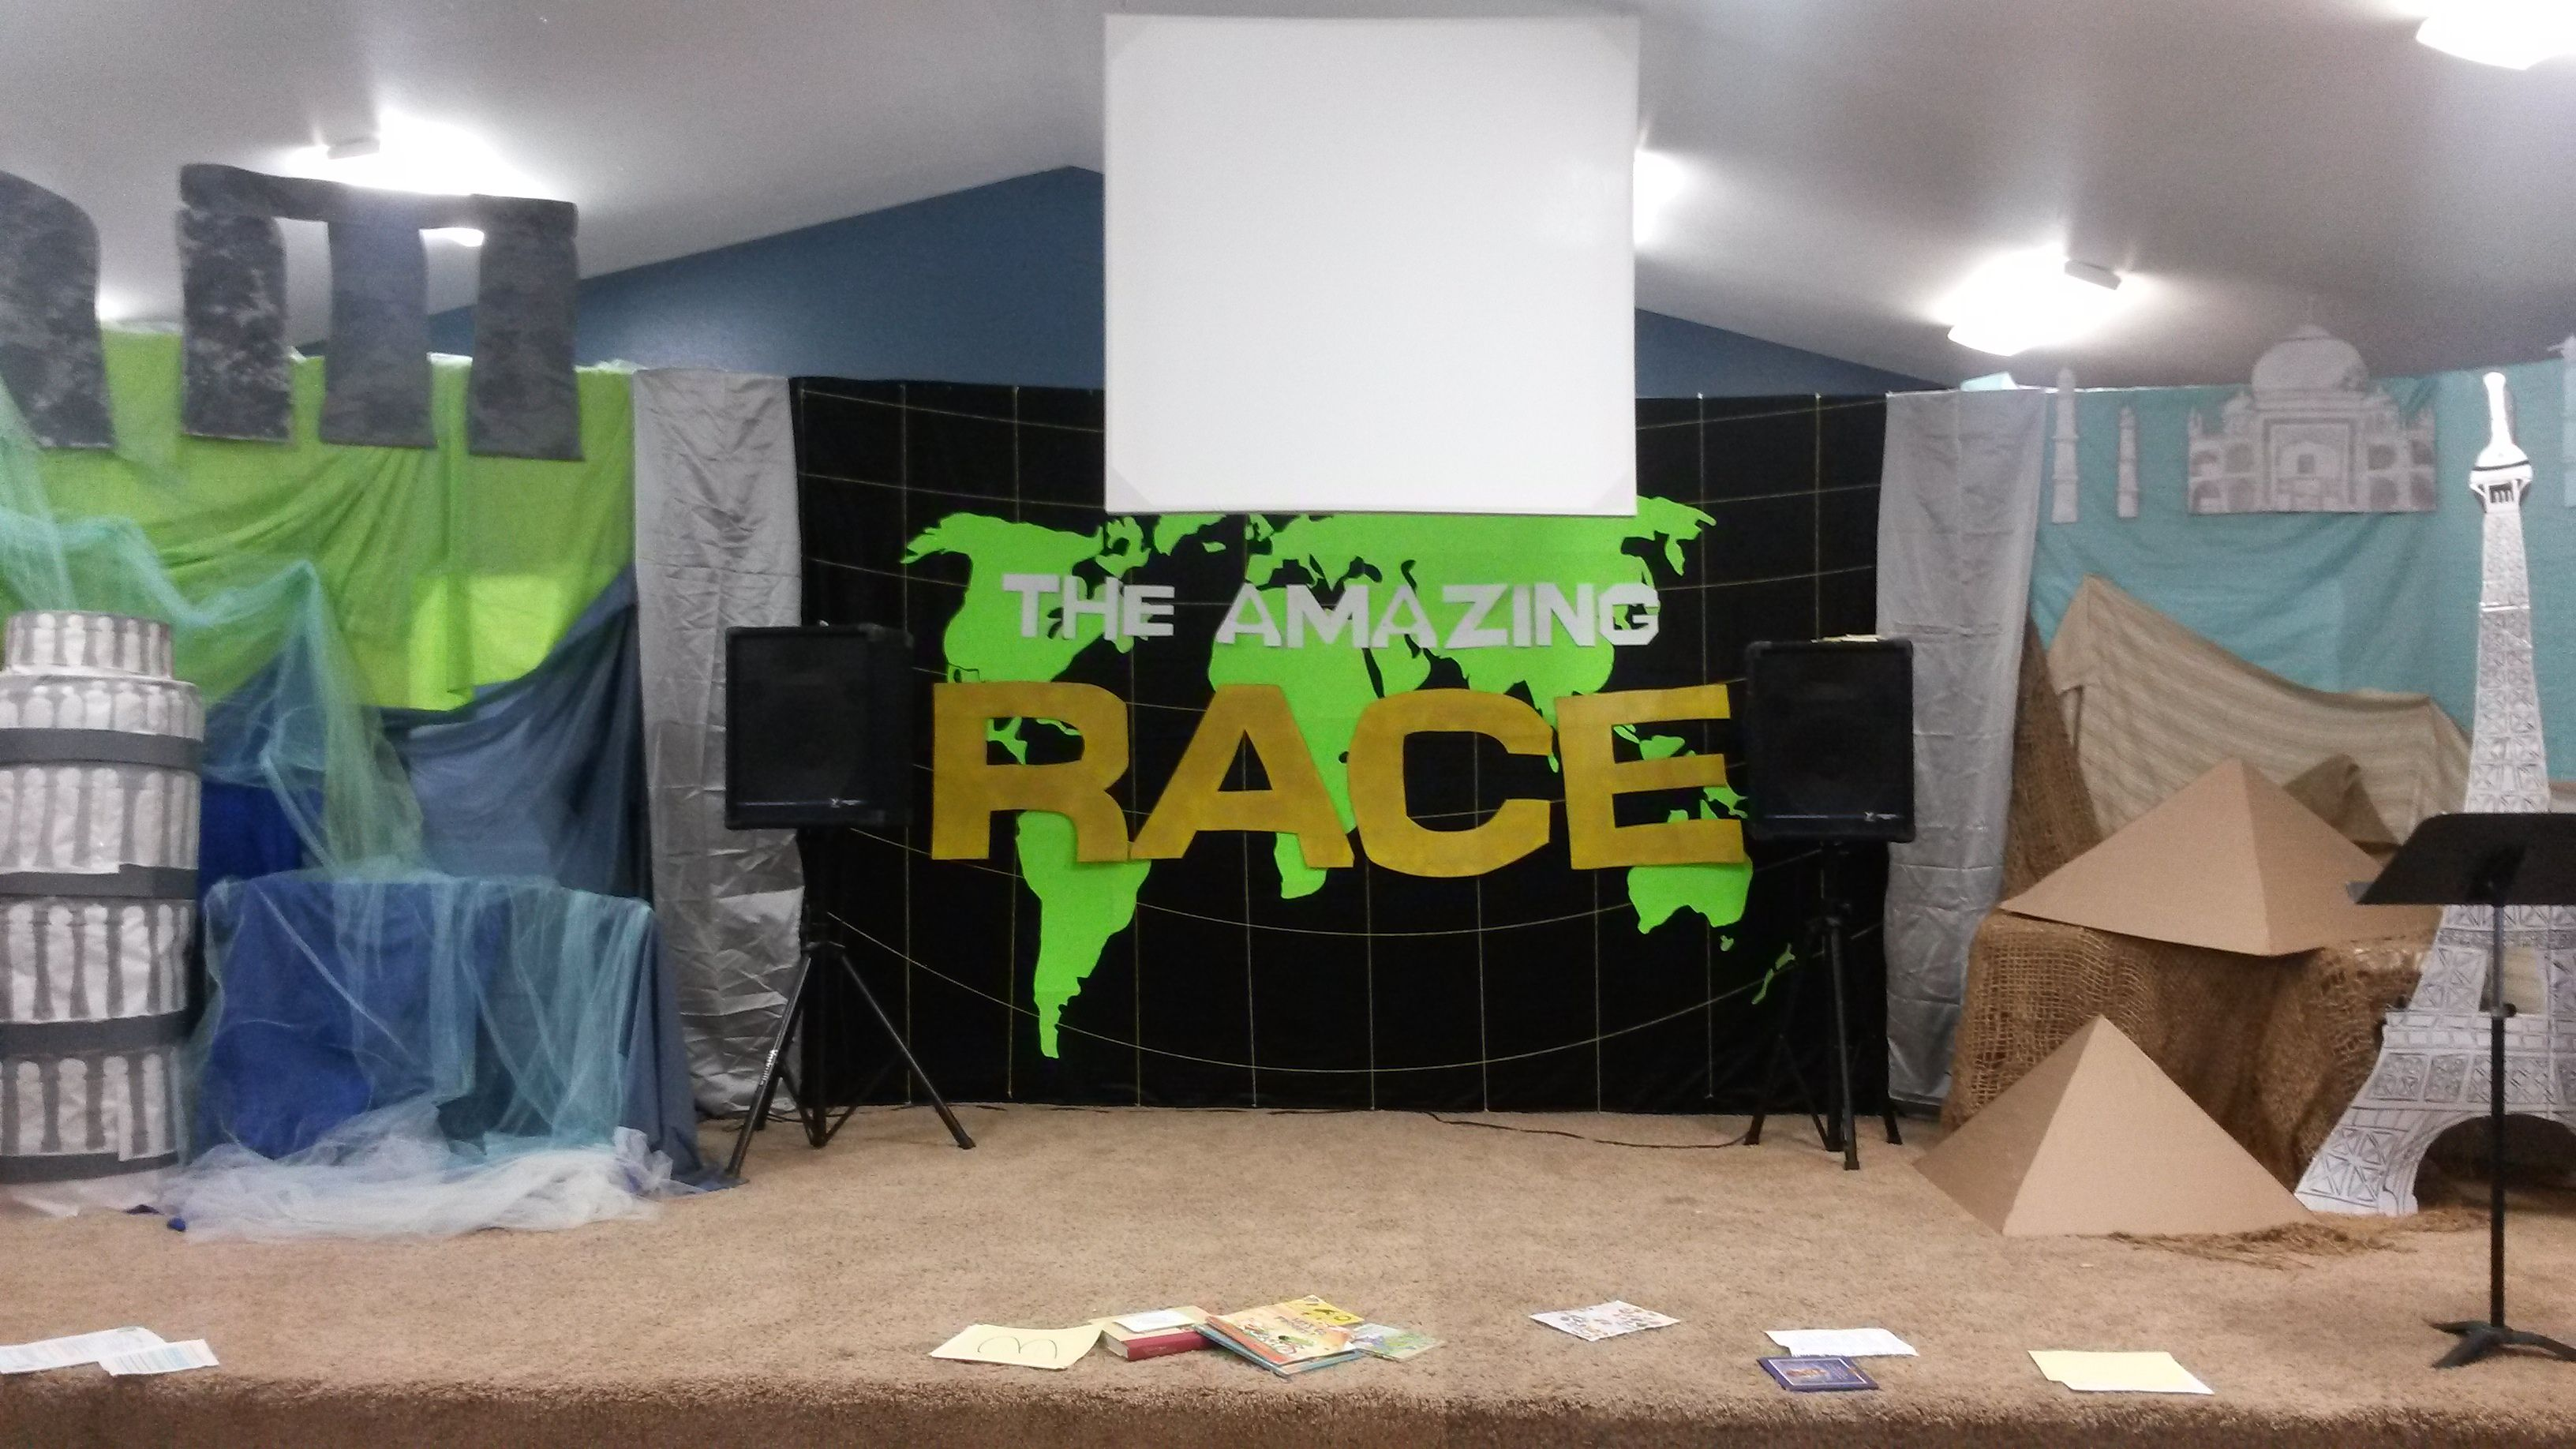 Childrens Ministry Stage Decorations  Amazing Race Theme Wonders Of